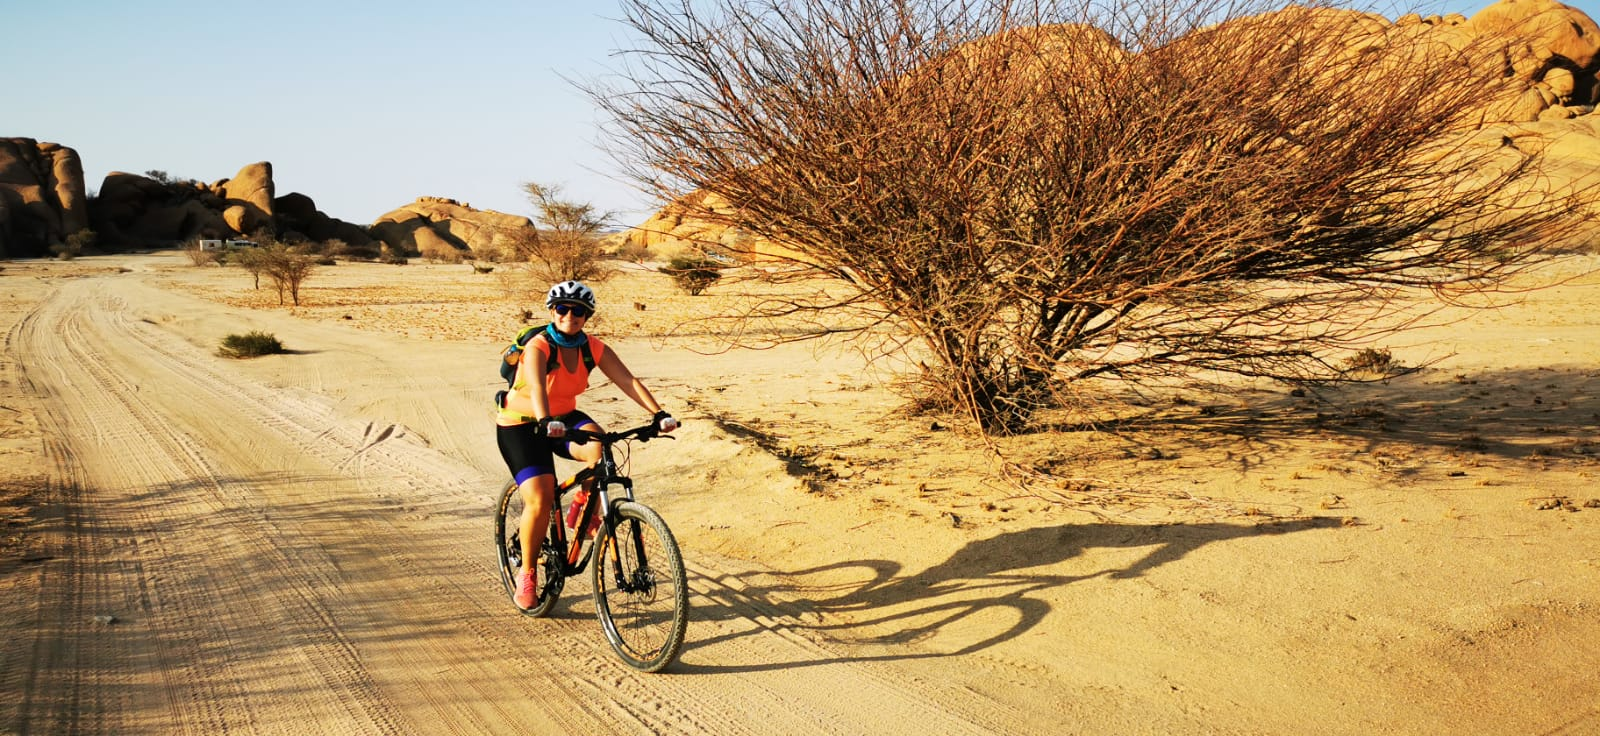 Ricarda during a mountain bike trip through Namibia